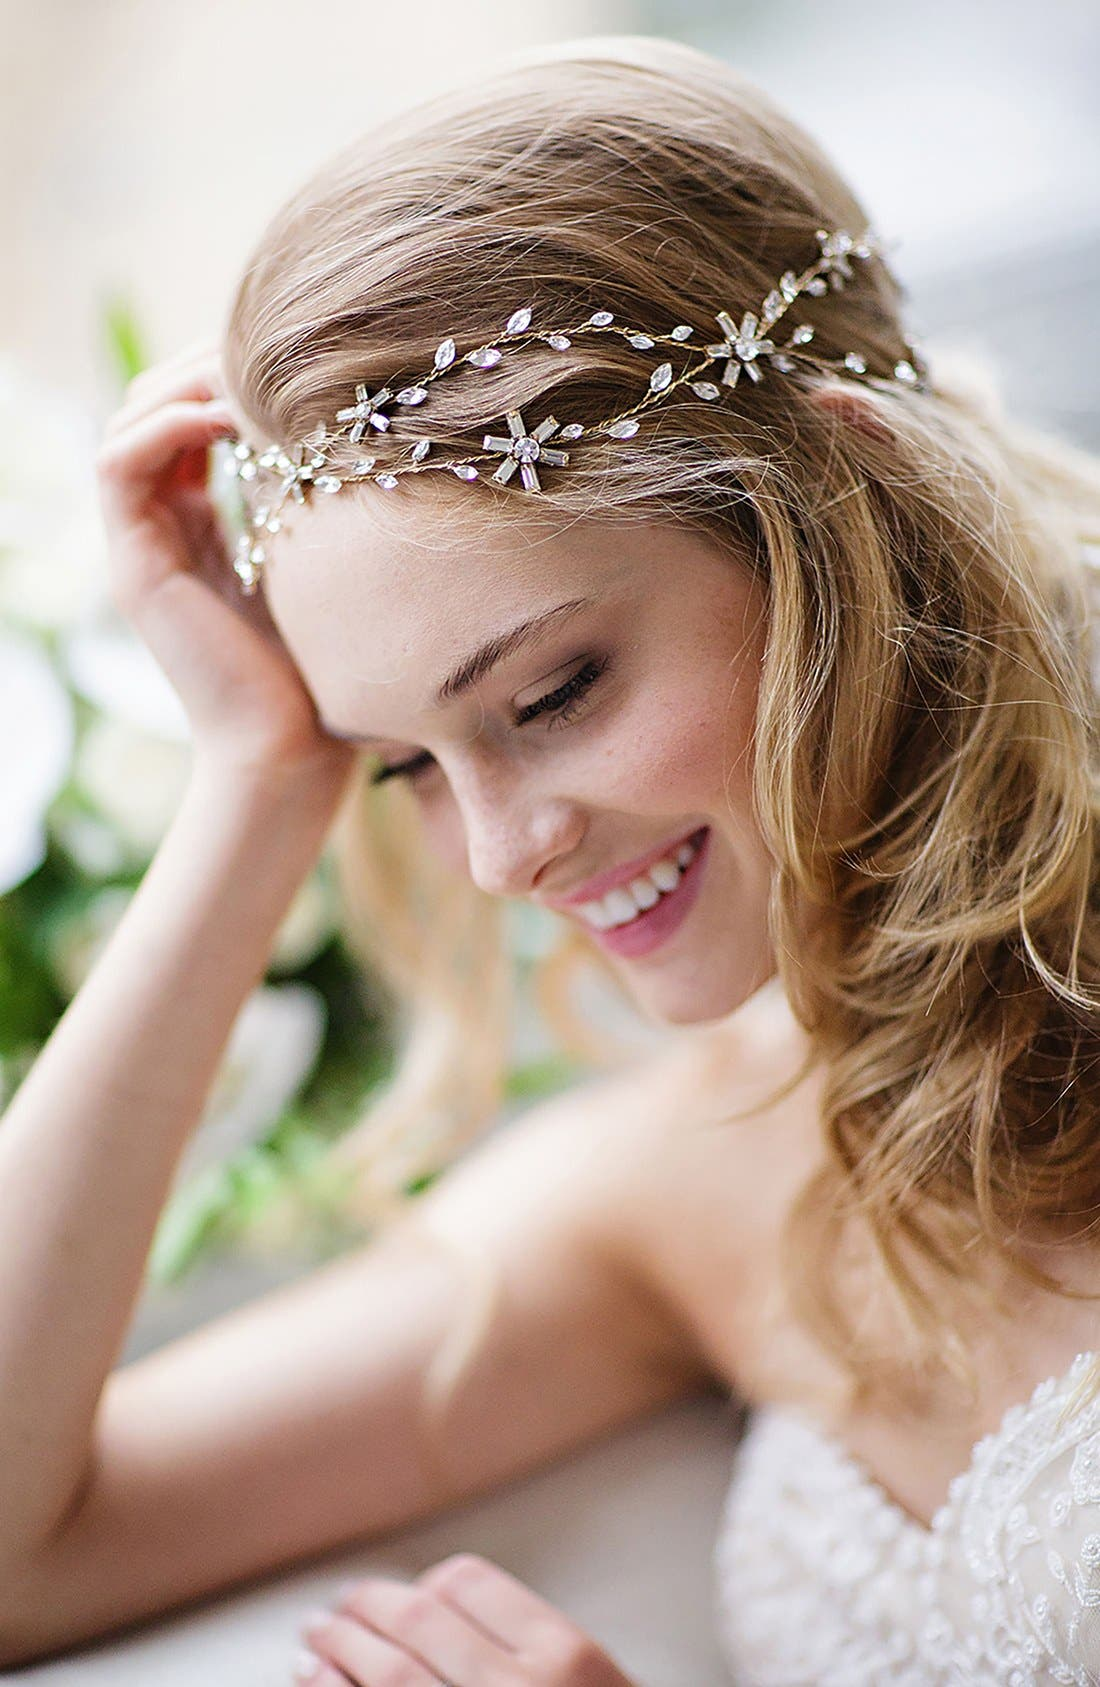 Brides & Hairpins 'Eula' Crystal Halo & Sash